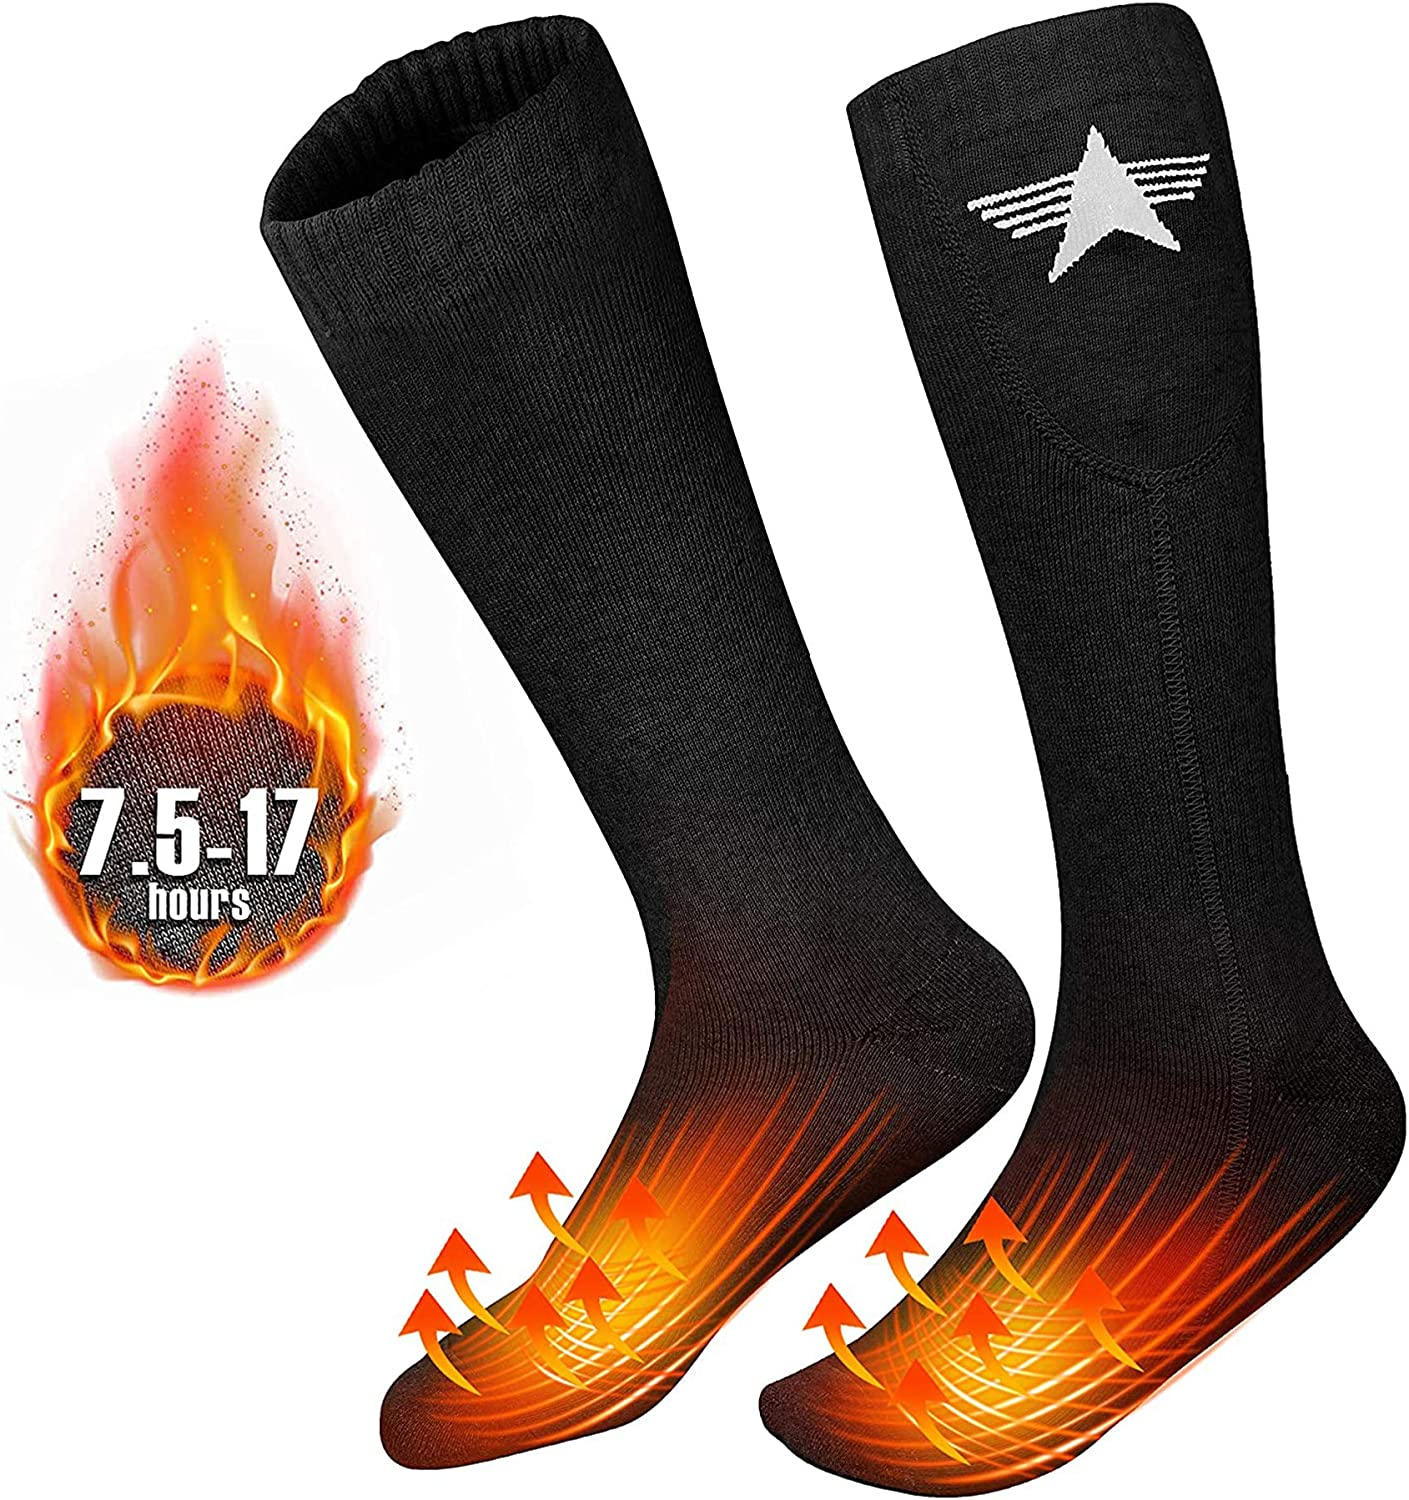 Rechargeable 3 Heating Settings Thermal Sock Winter Outdoor Novelty Foot Warmer Jomst Upgraded Electric Heated Socks for Men Women Fits US Size 6-14.